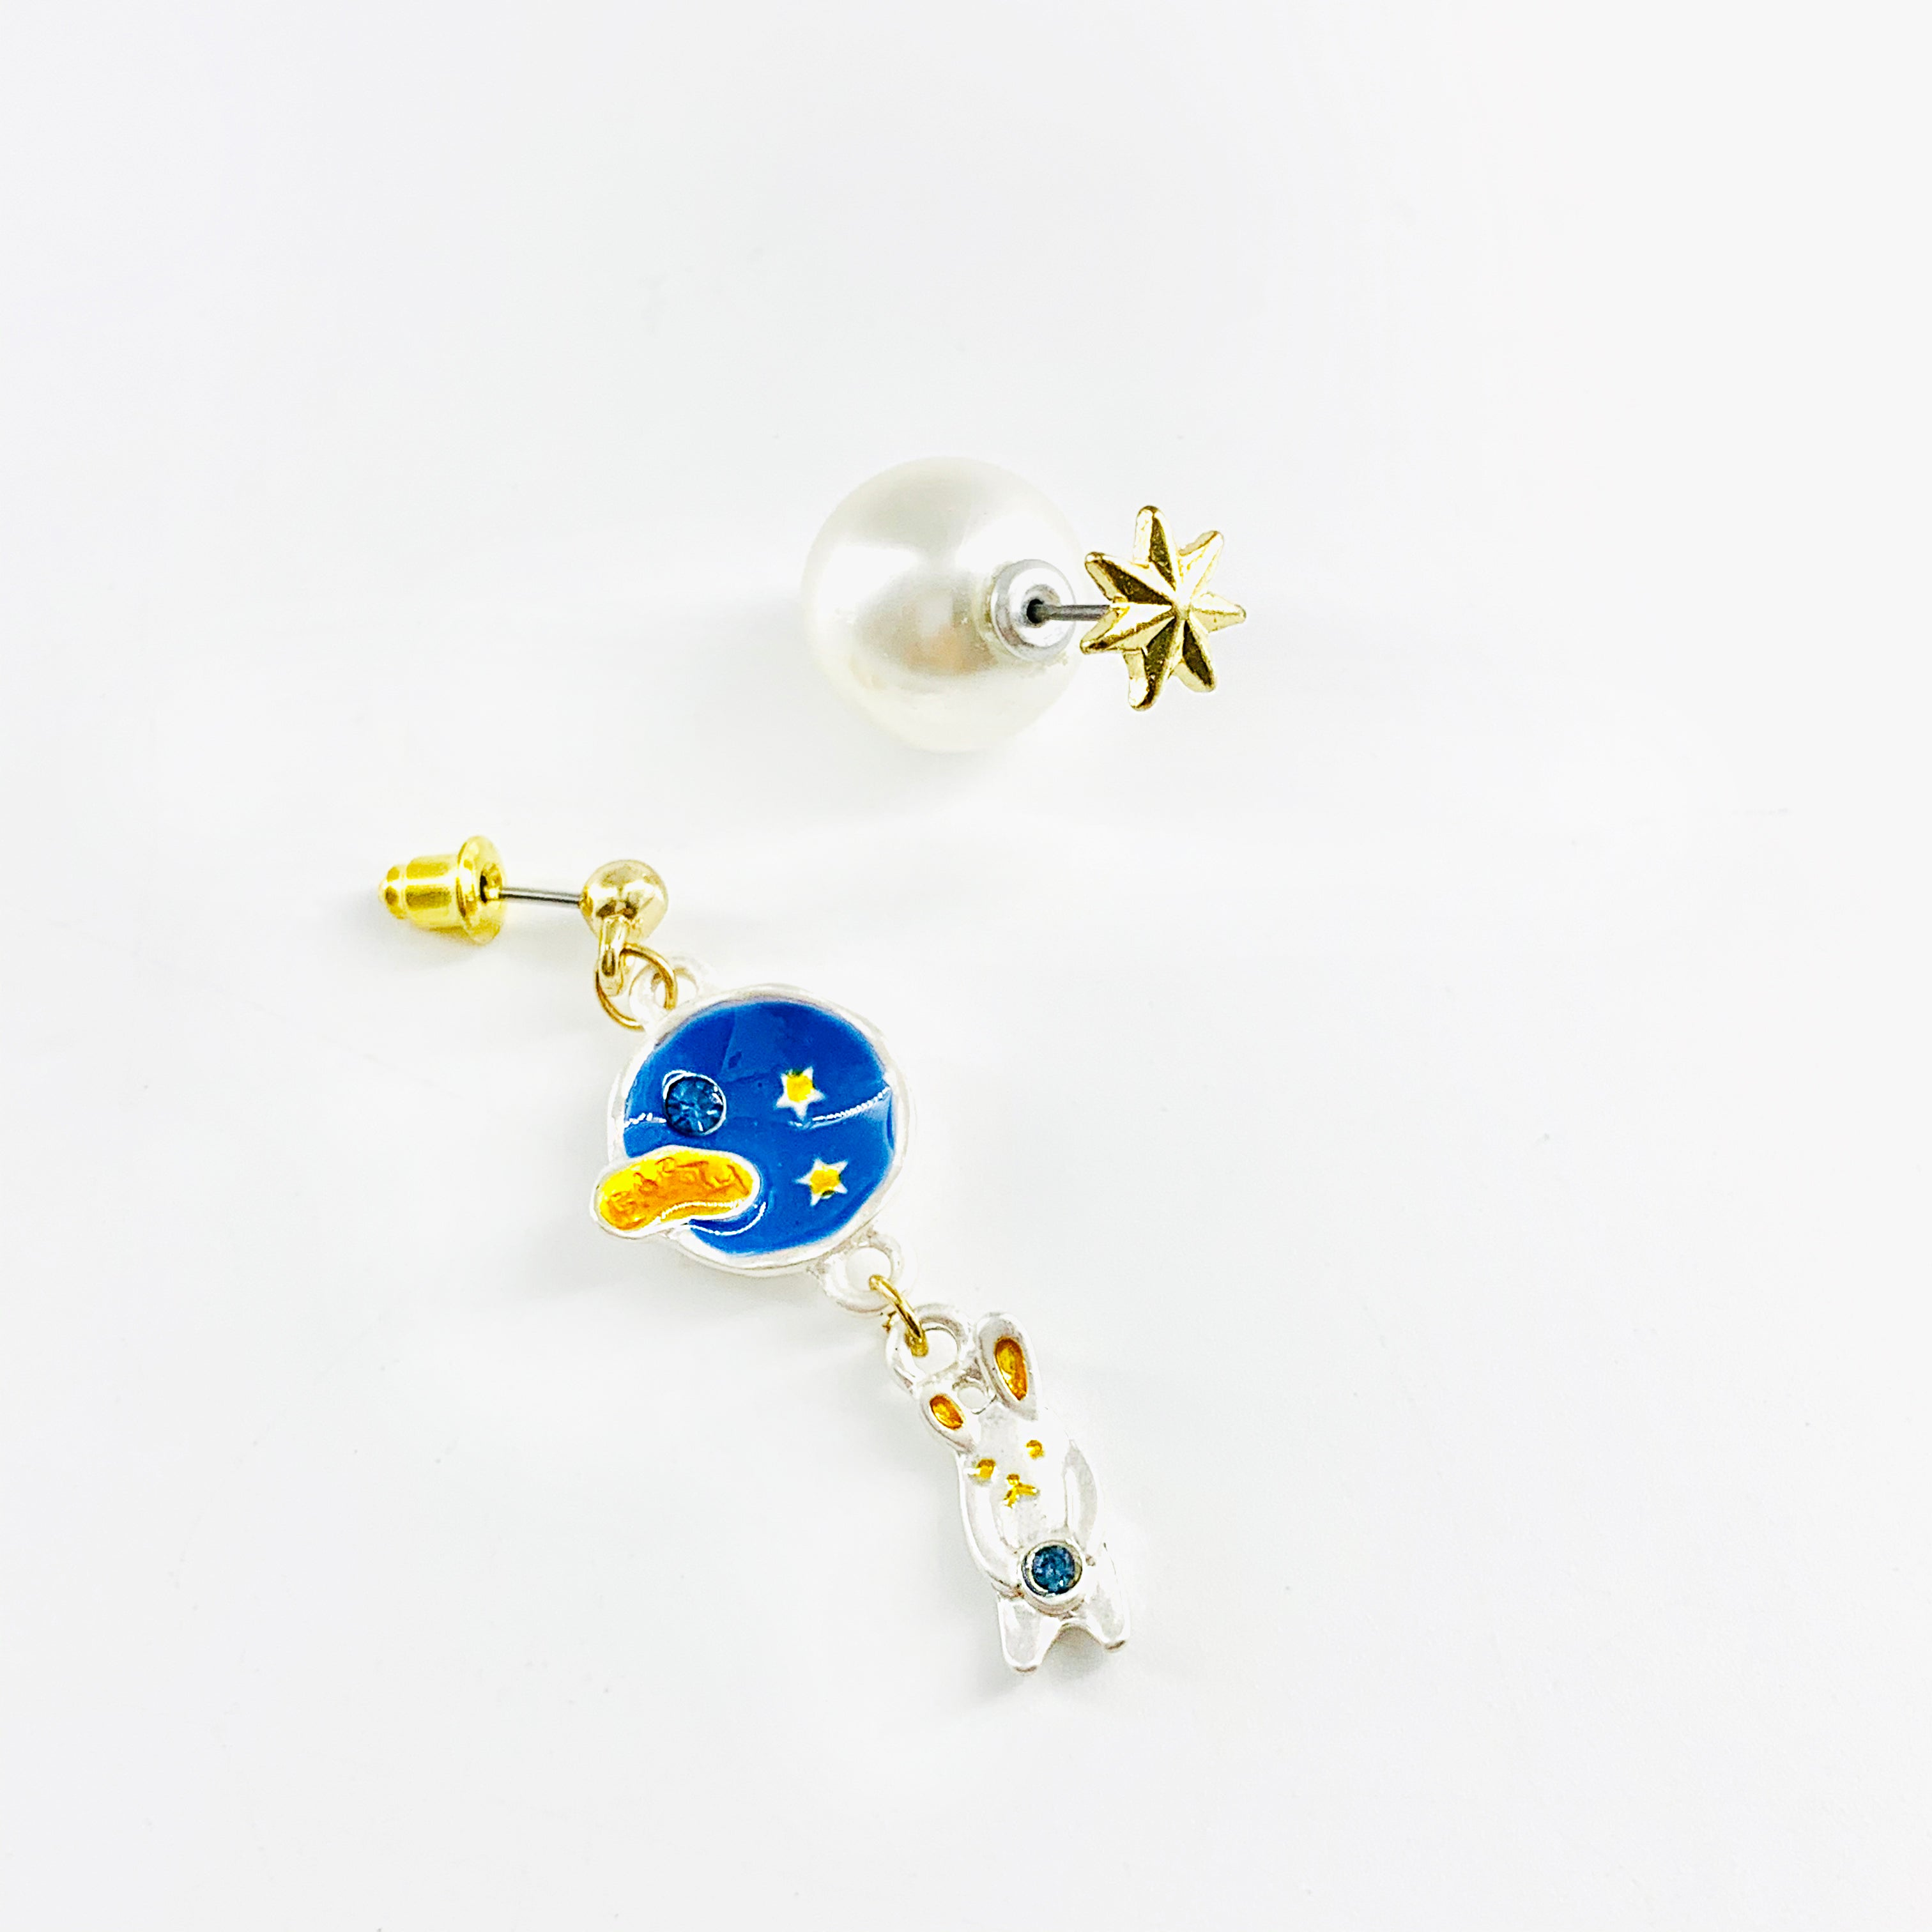 Asymmetric earrings with planet and star pearl